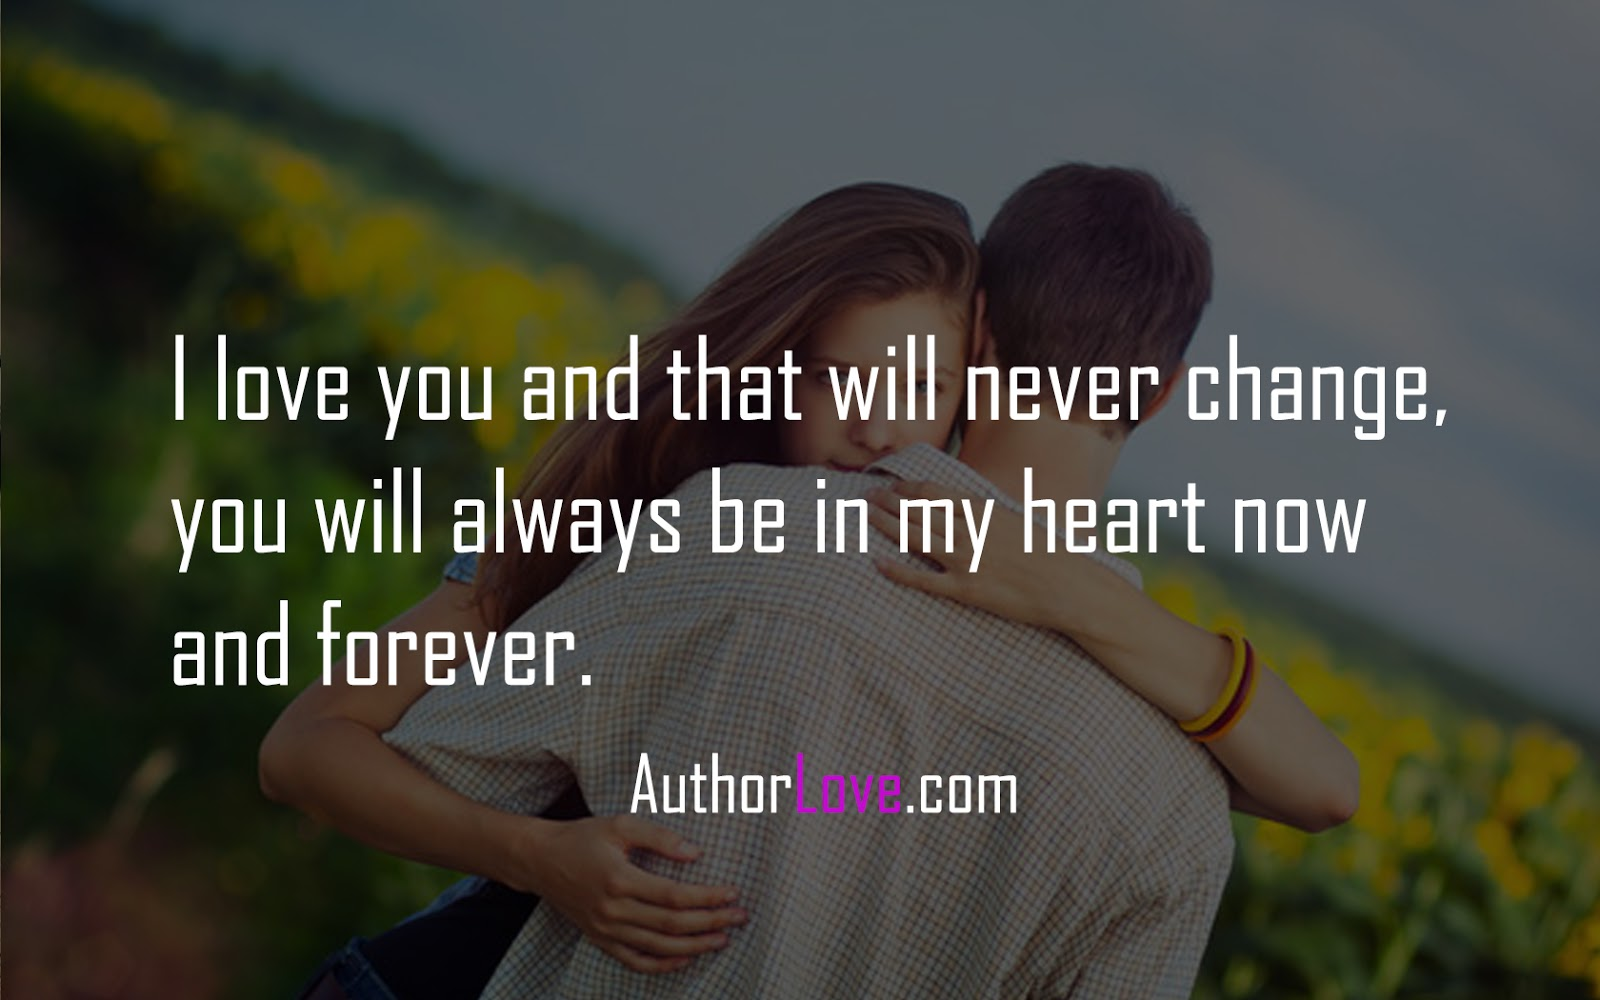 You N I Love Quotes : Love You And That Will Never Change Love Quotes Author Love ...